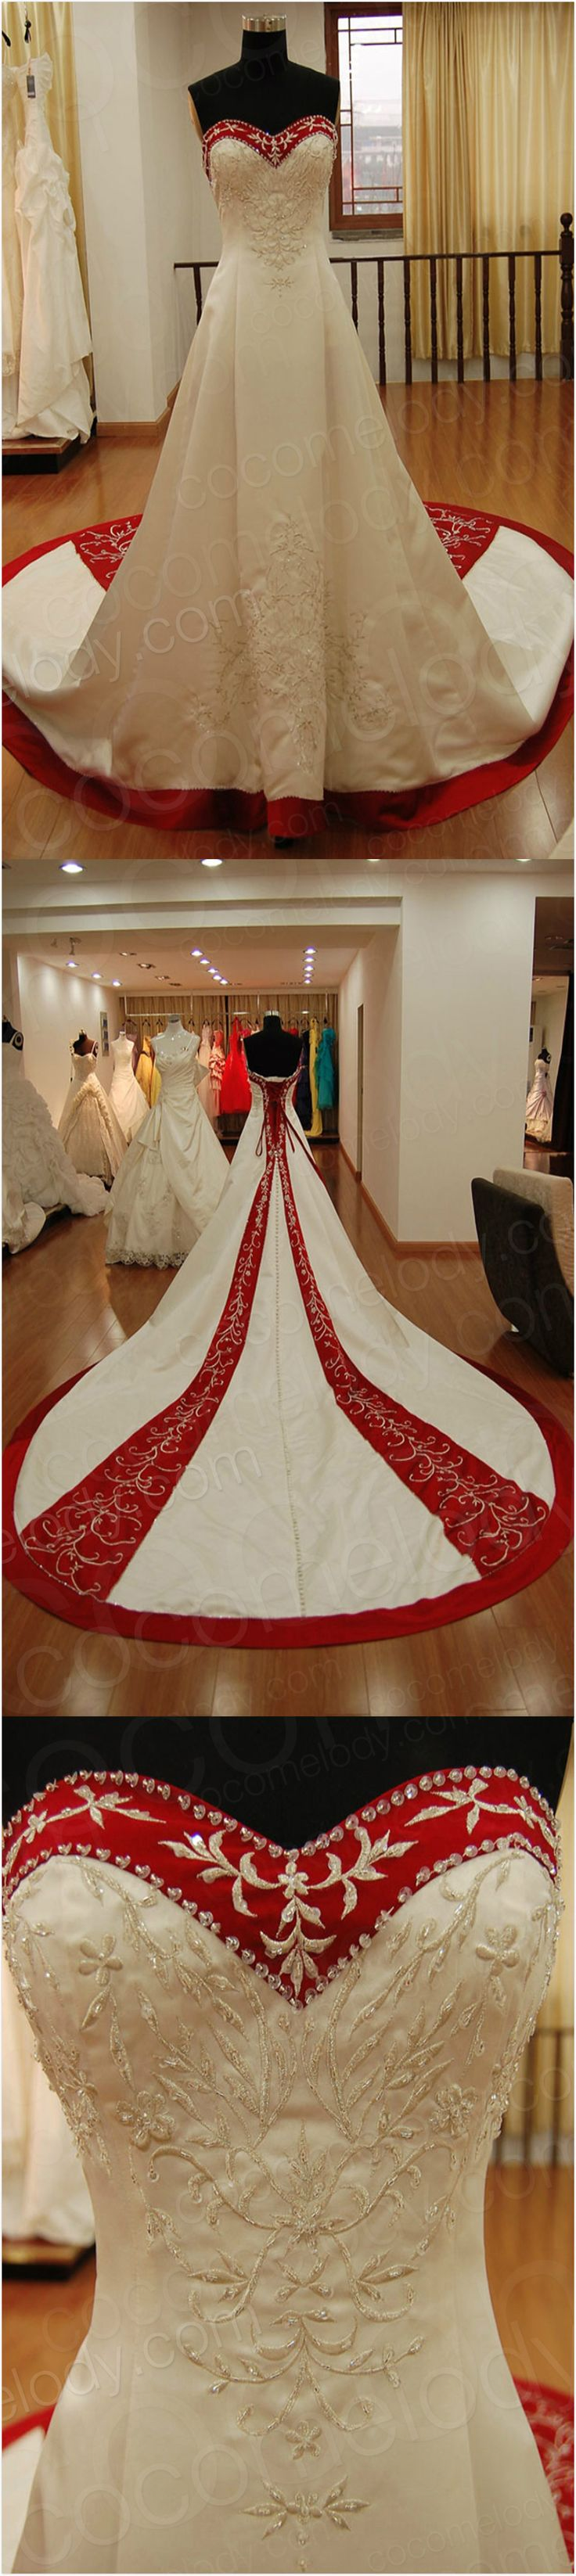 Vintage Wedding dress, do you love it? some b2bs wanna change red into different colors!